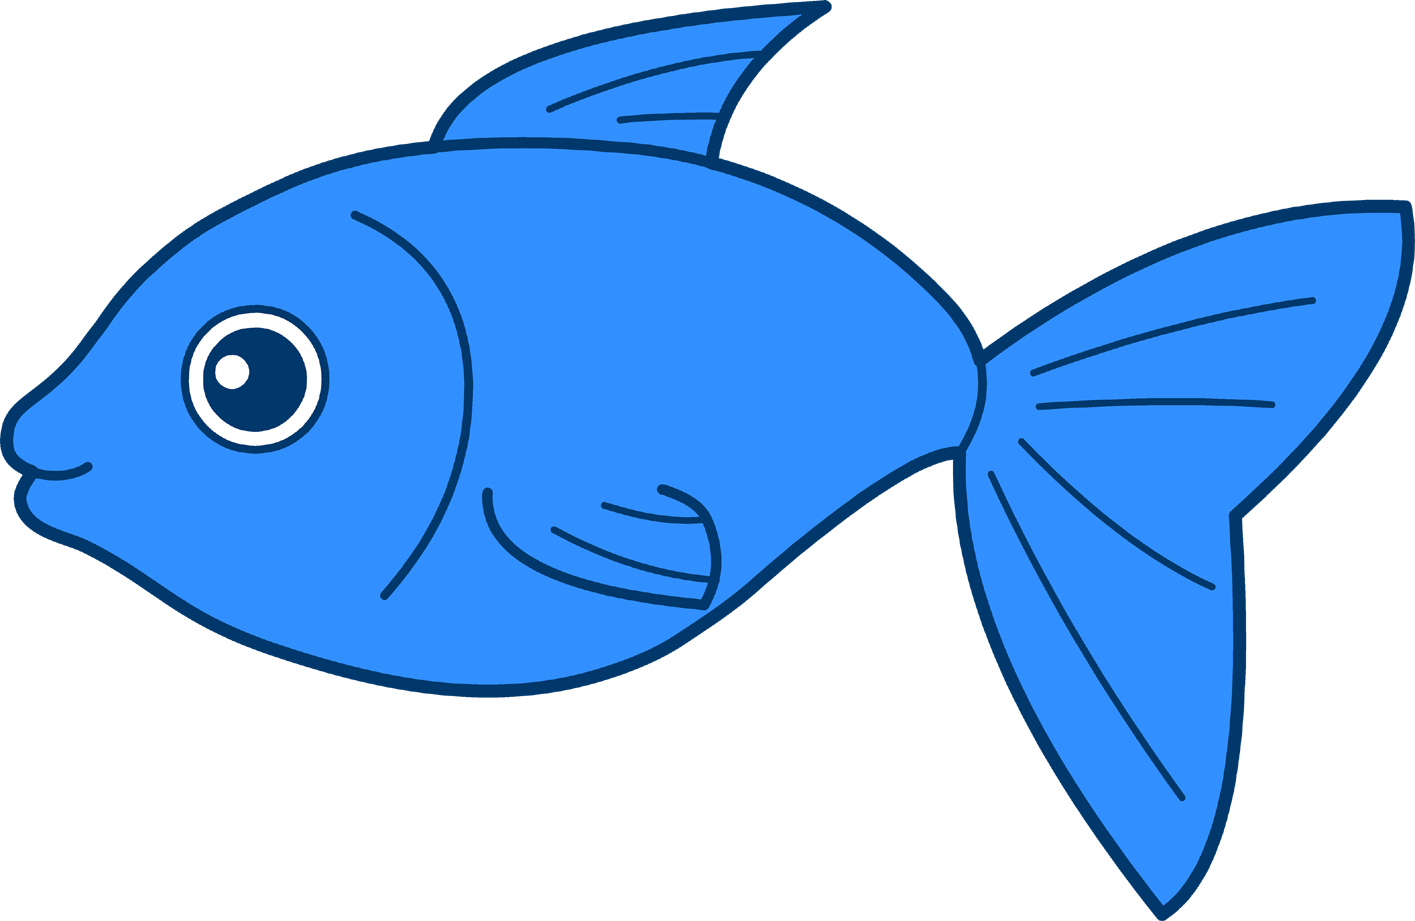 For kids at getdrawings. Cute purple fish clipart